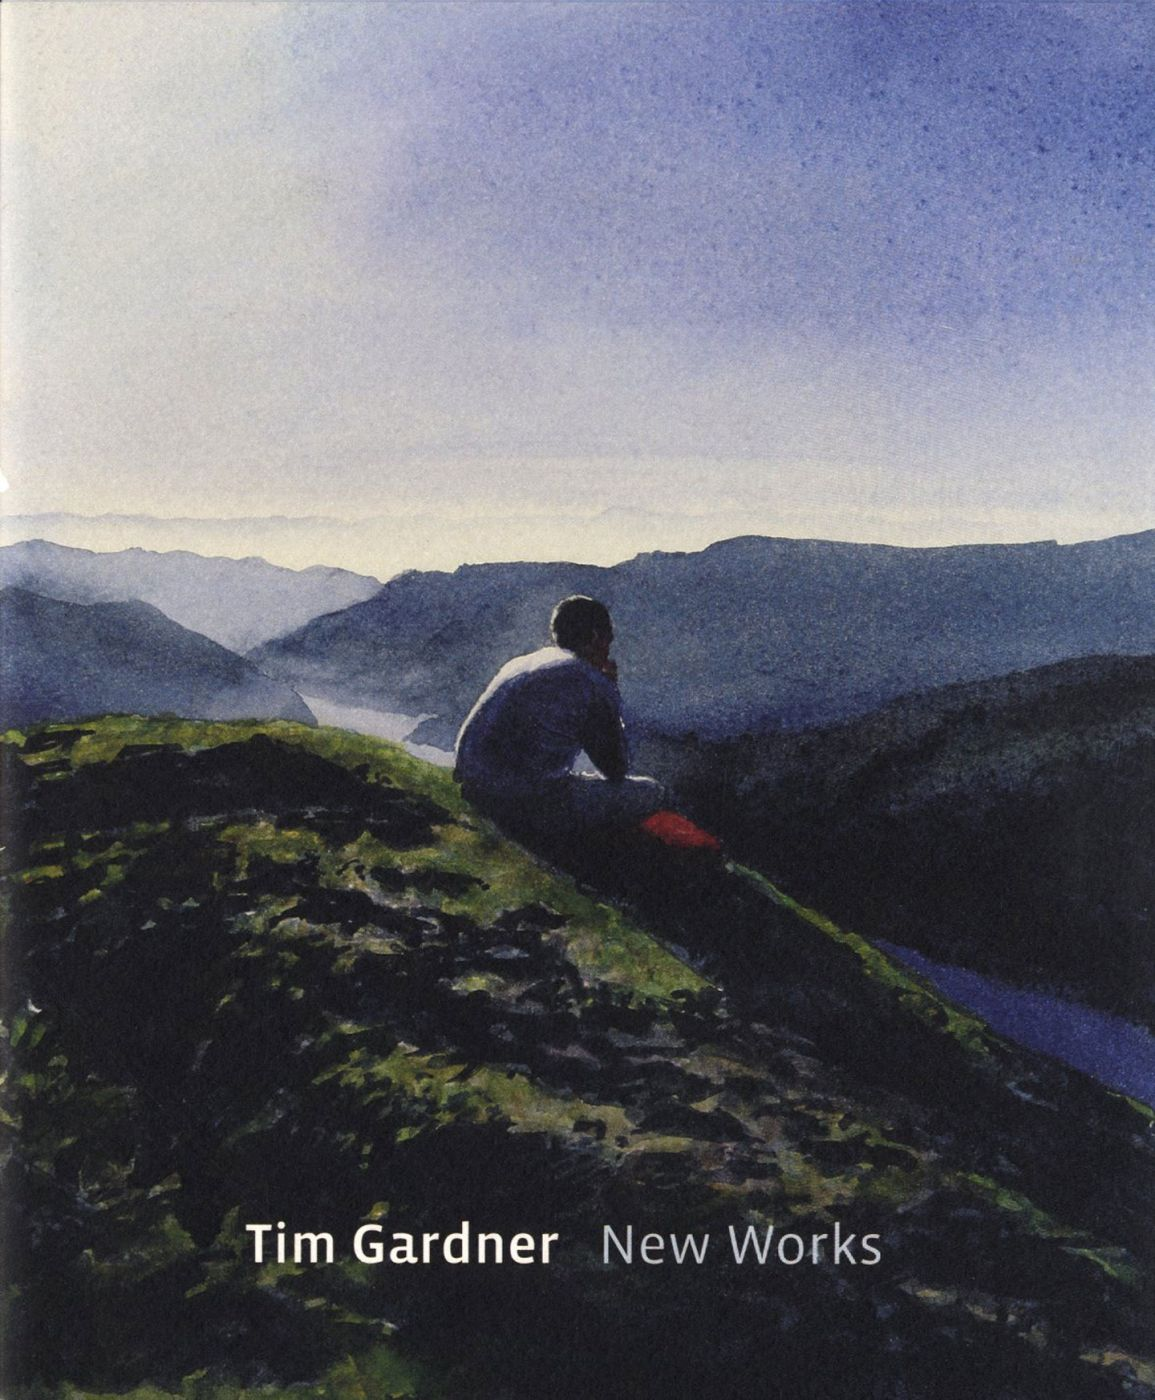 Tim Gardner: New Works